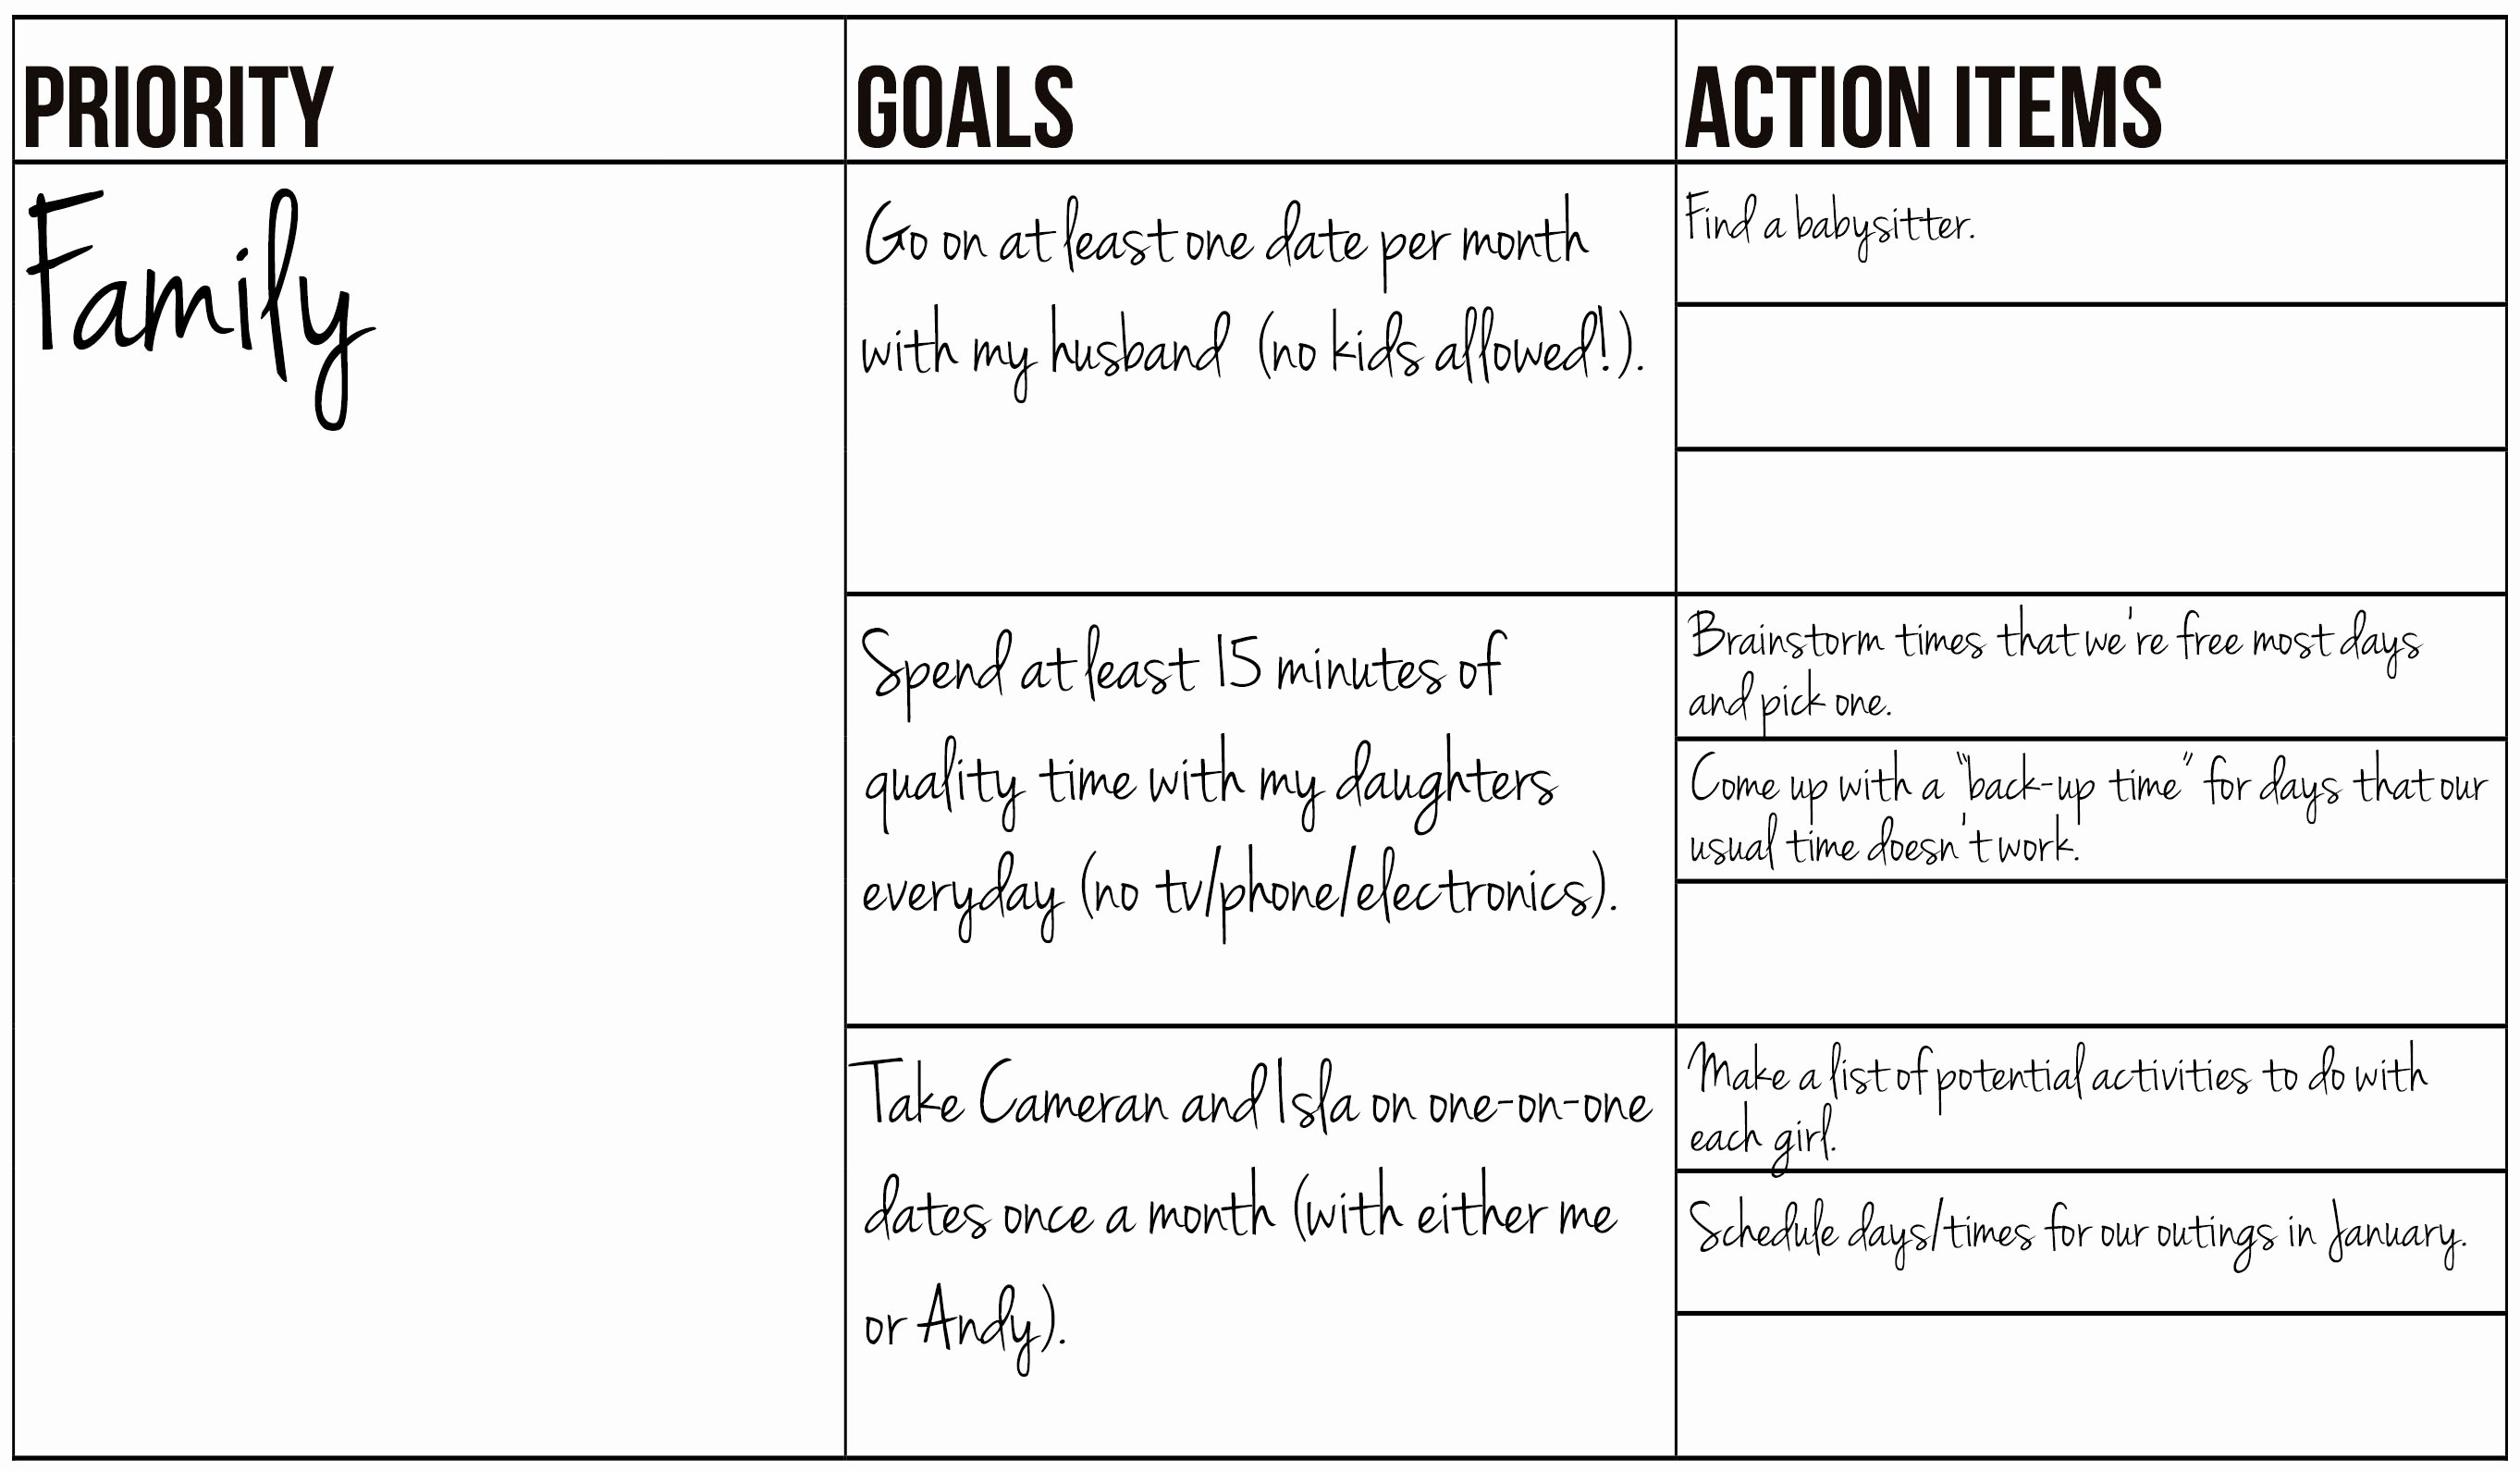 Personal Wellness Plan Template New Free Printable Goal Setting Worksheet and Instructions